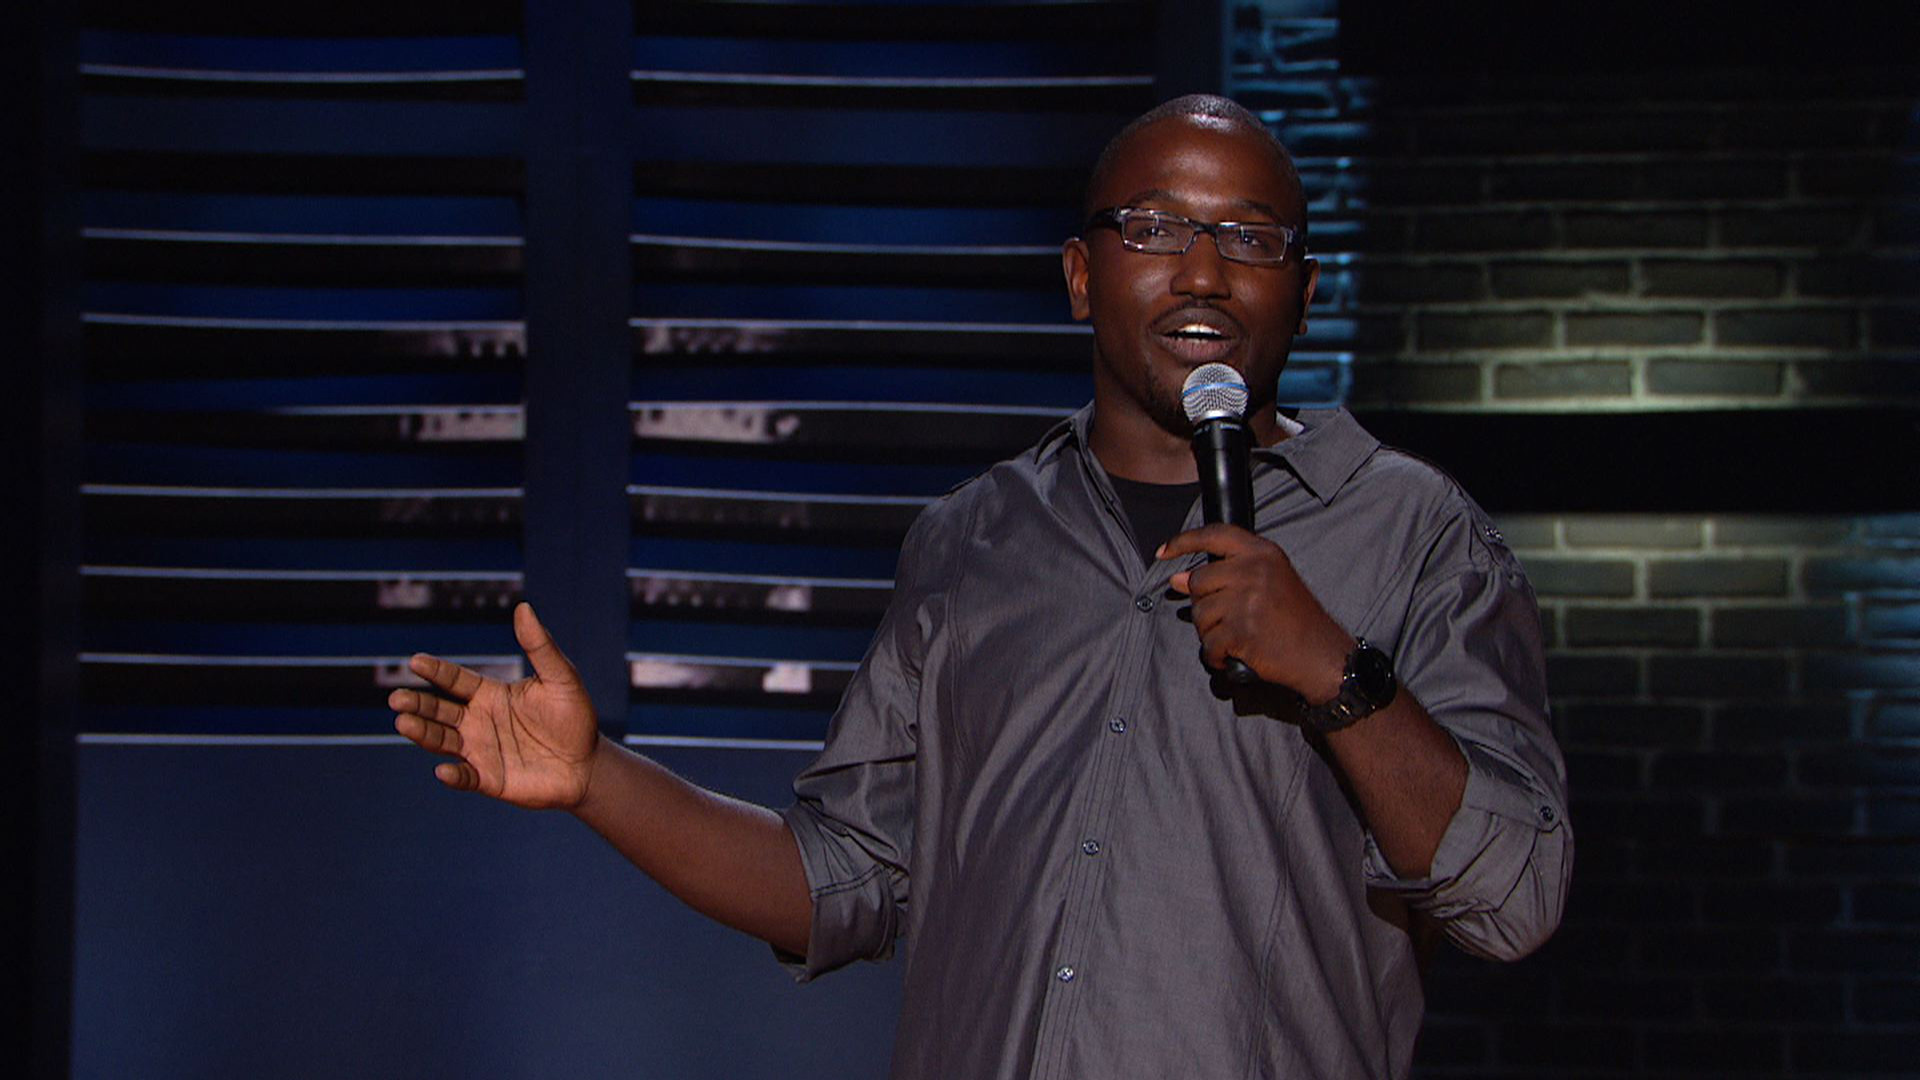 Hannibal Buress - Facebook Messaging